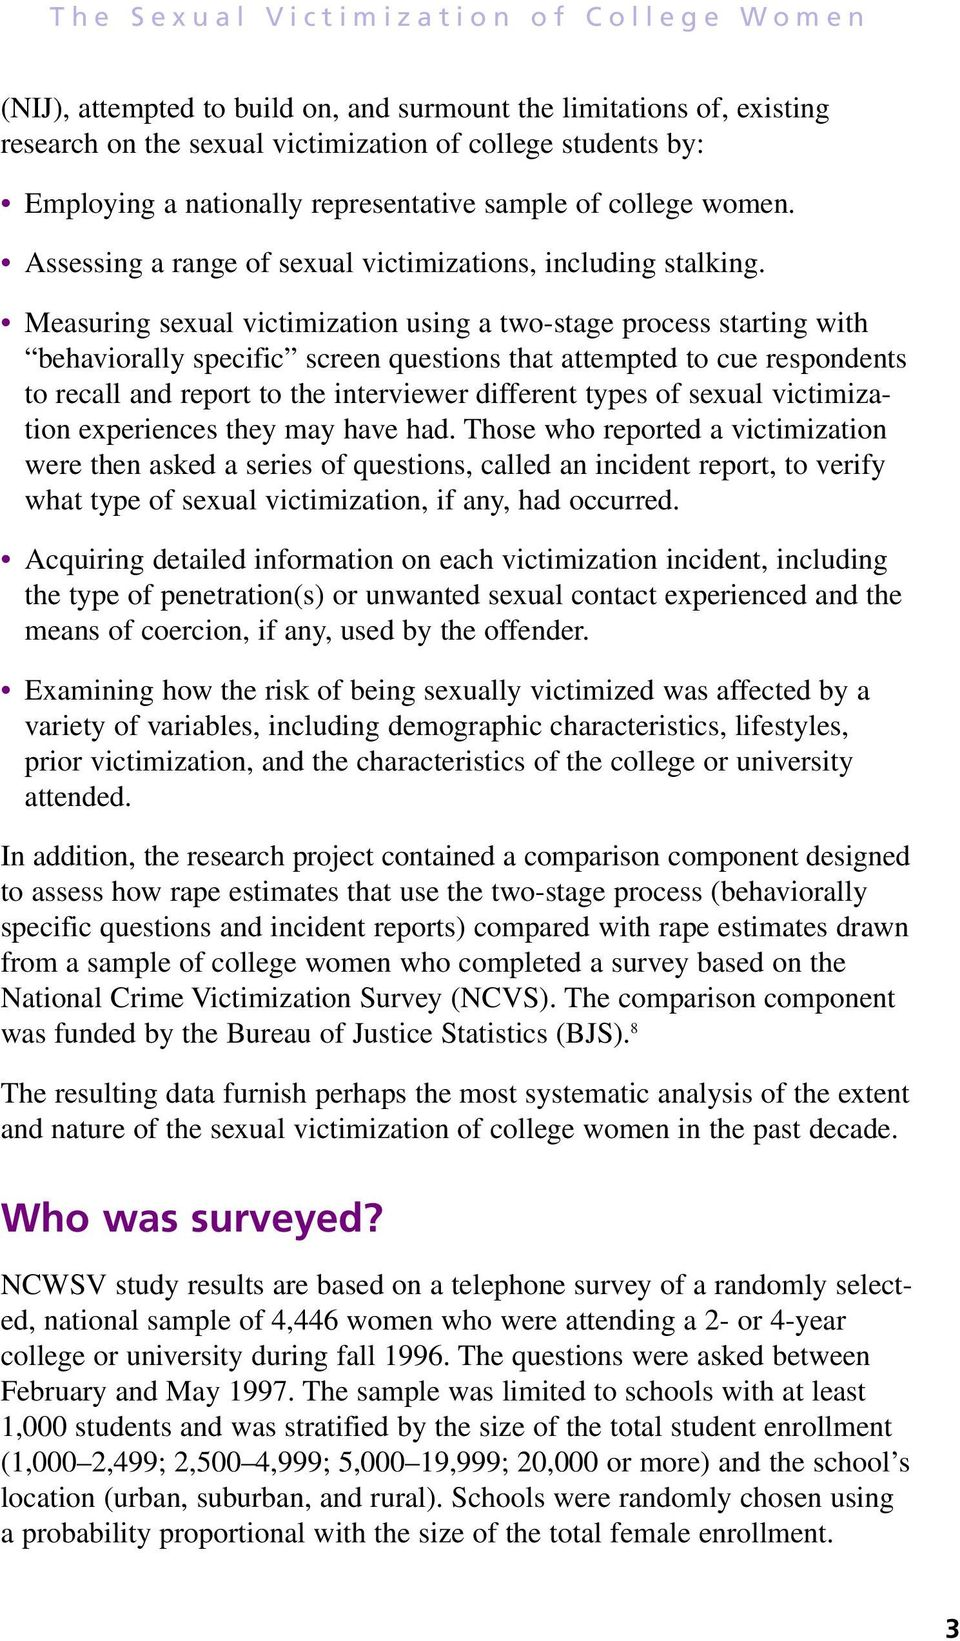 Measuring sexual victimization using a two-stage process starting with behaviorally specific screen questions that attempted to cue respondents to recall and report to the interviewer different types